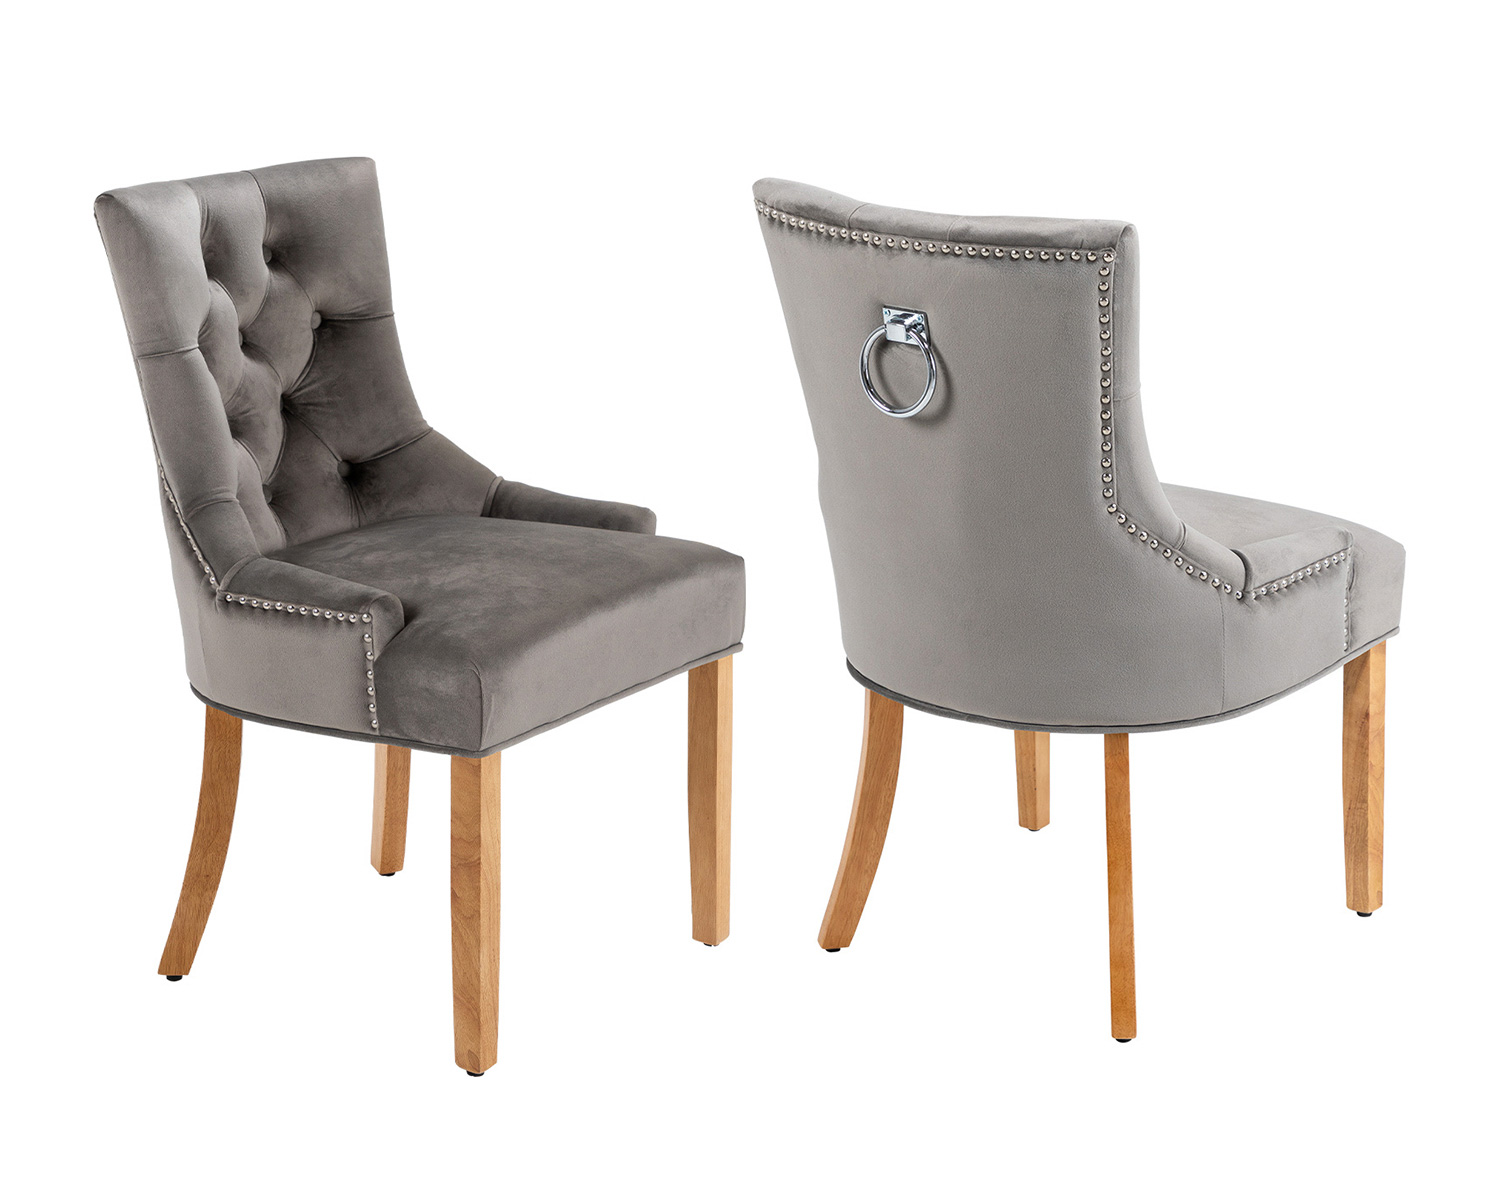 Verona Scoop Back Velvet Dining Chairs In Grey With Knocker And Oak Legs